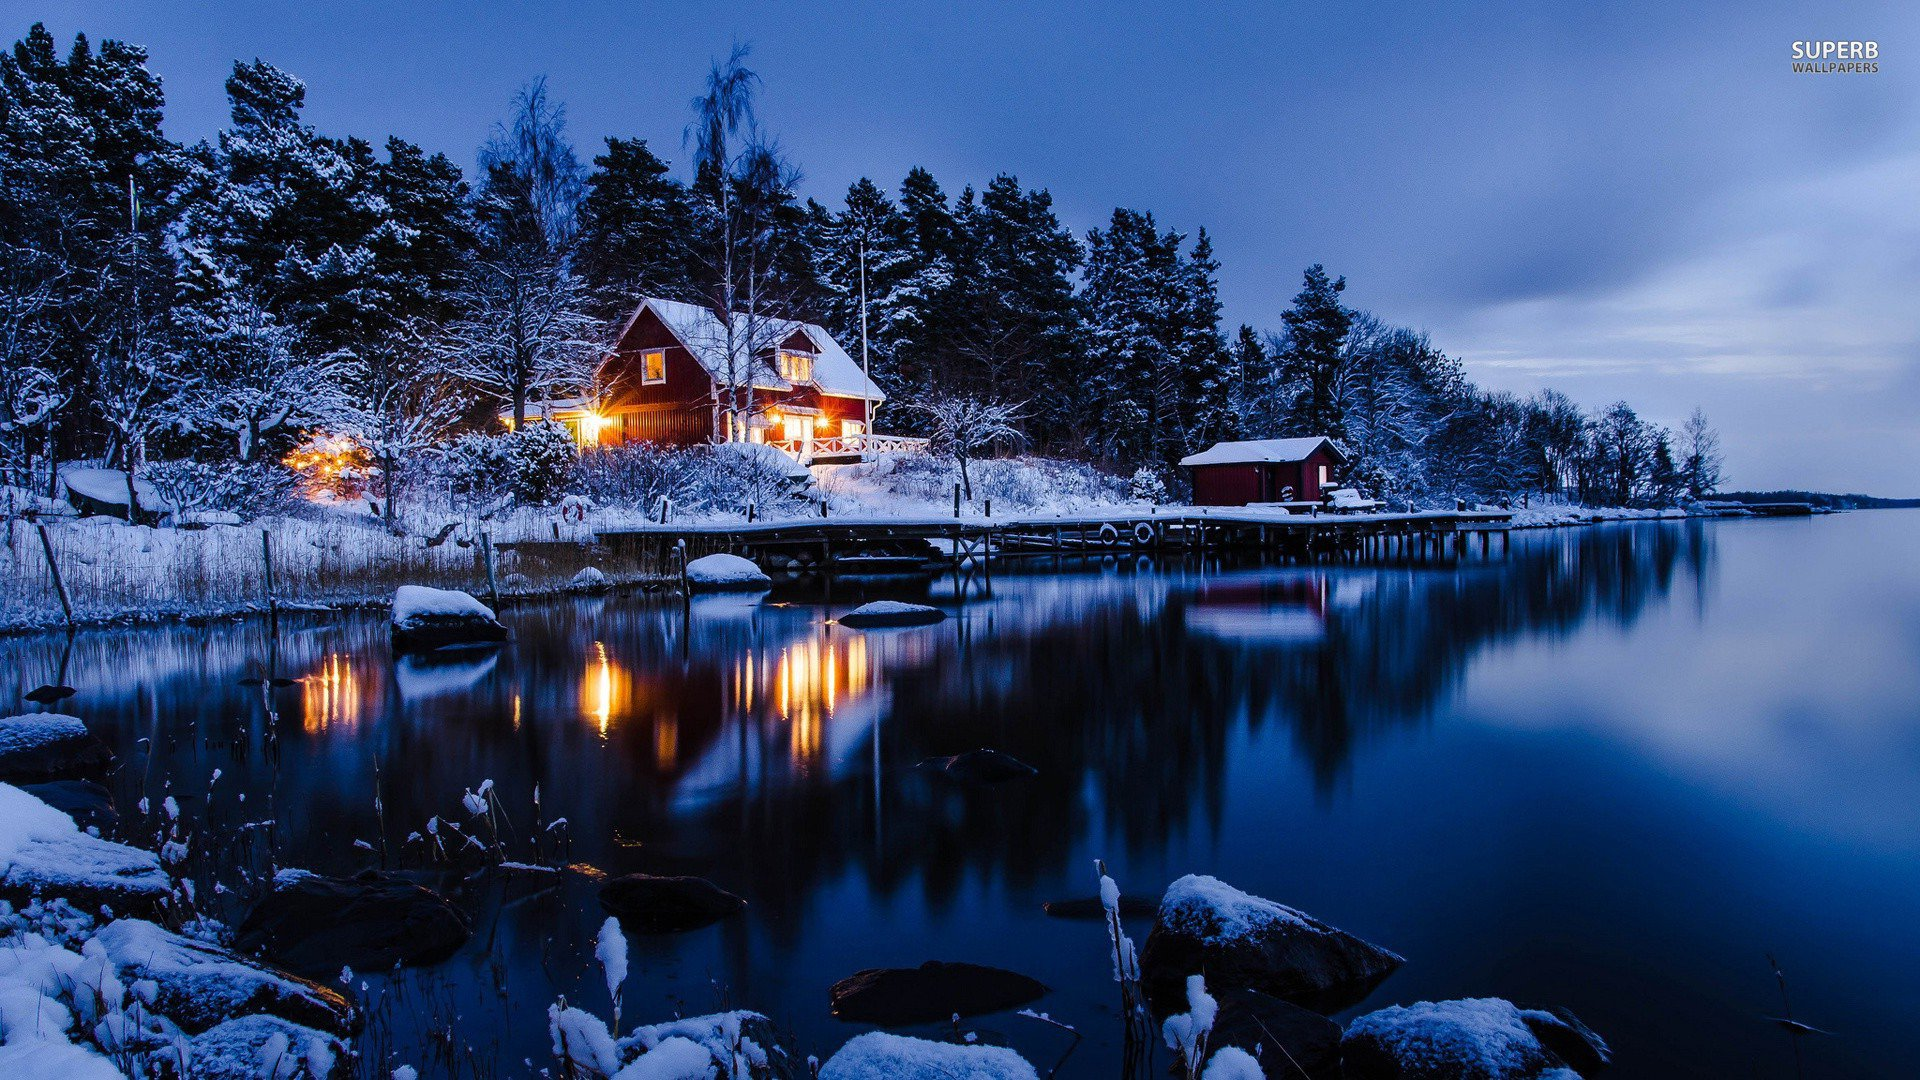 3d Image Live Wallpaper For Android Free Download Download Lake House Wallpaper Gallery